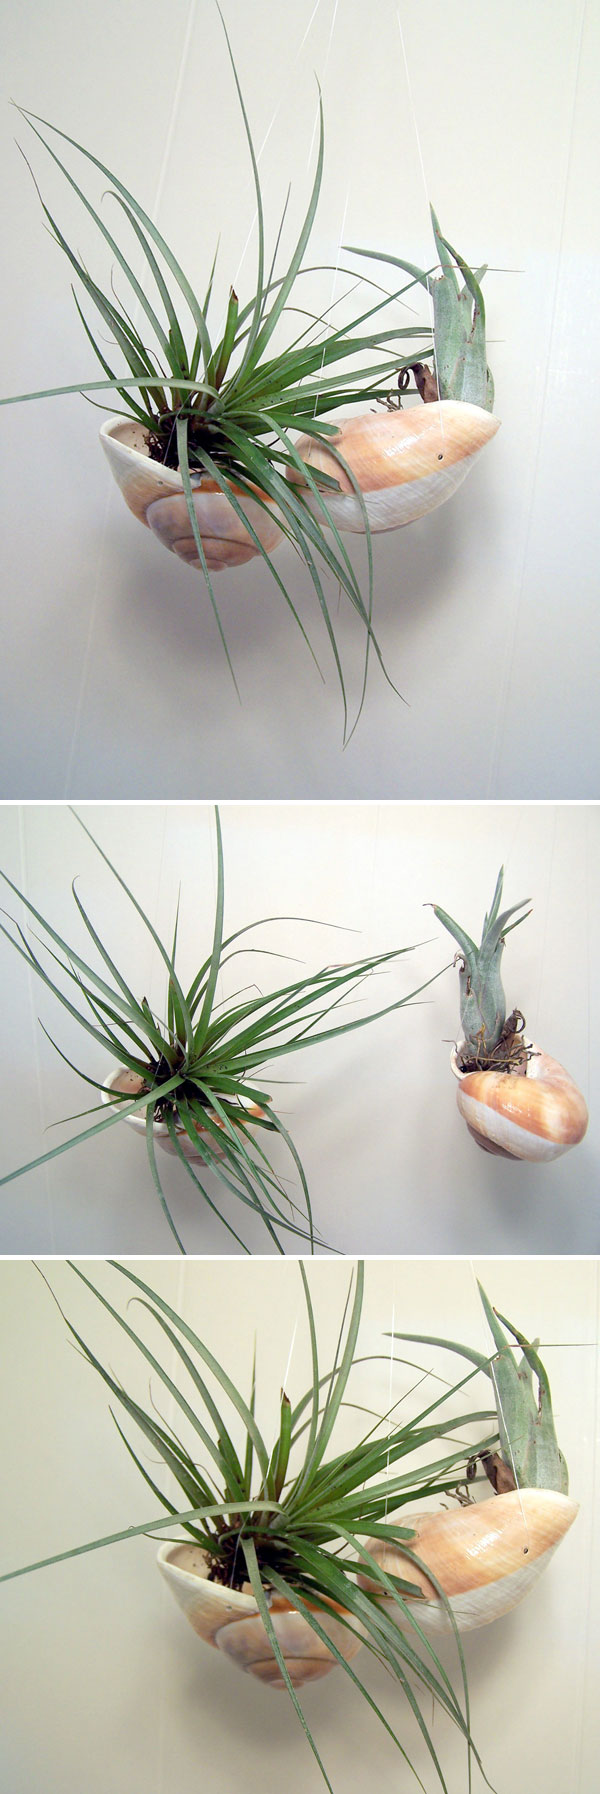 AIR PLANTS Hanging shells w/ air plants made from large